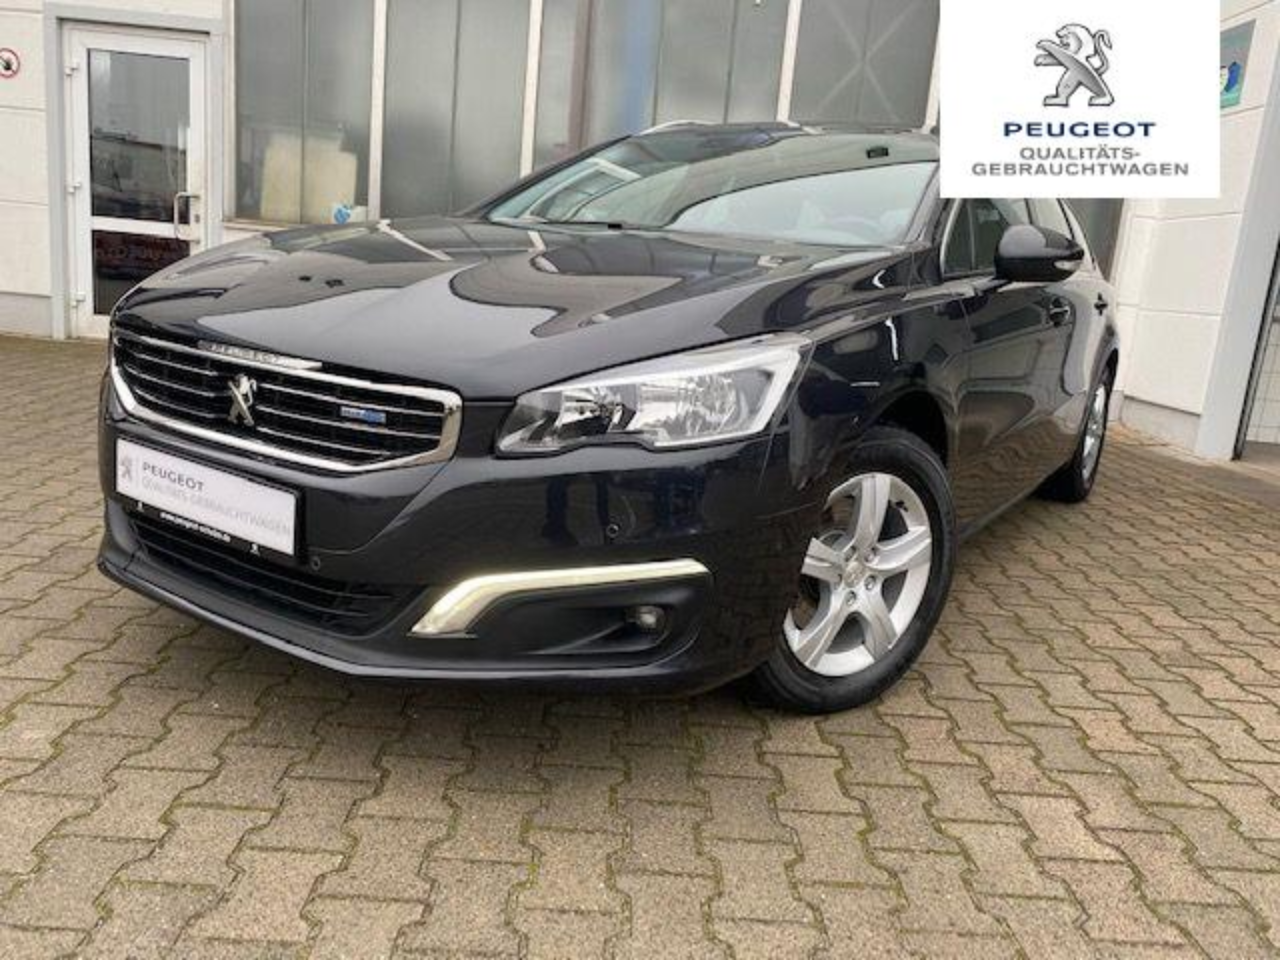 Peugeot 508 SW BlueHDi 150 Stop&Start Business-Line